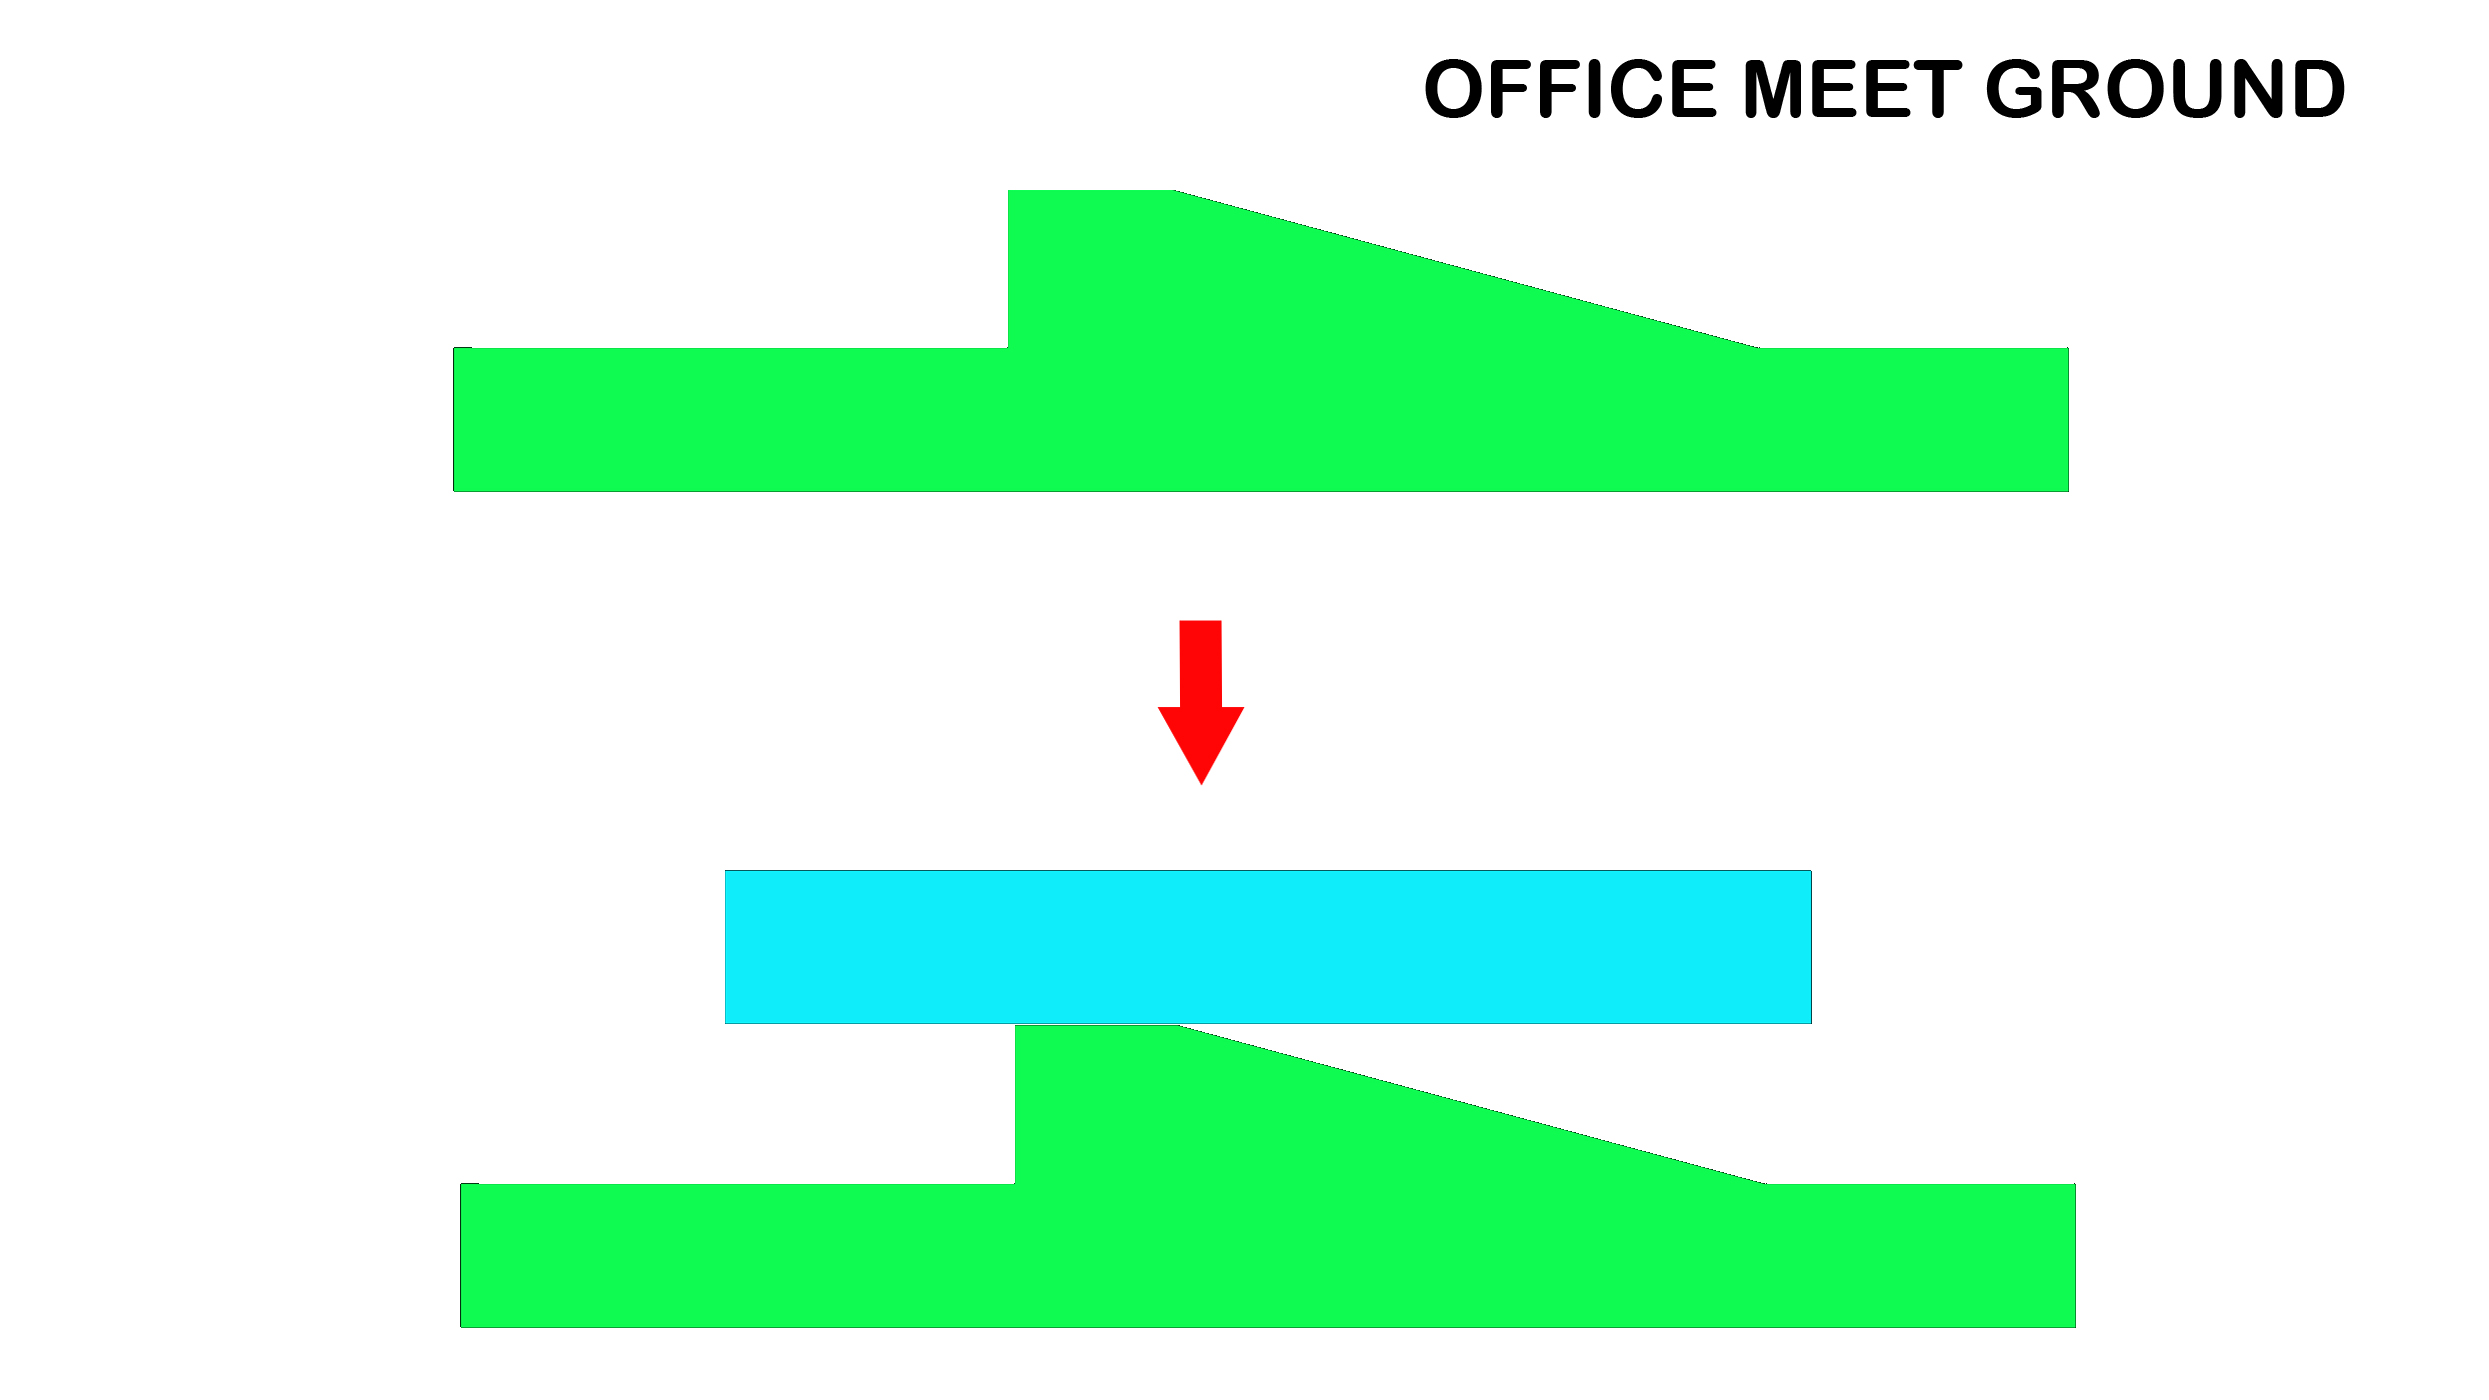 06office meetground